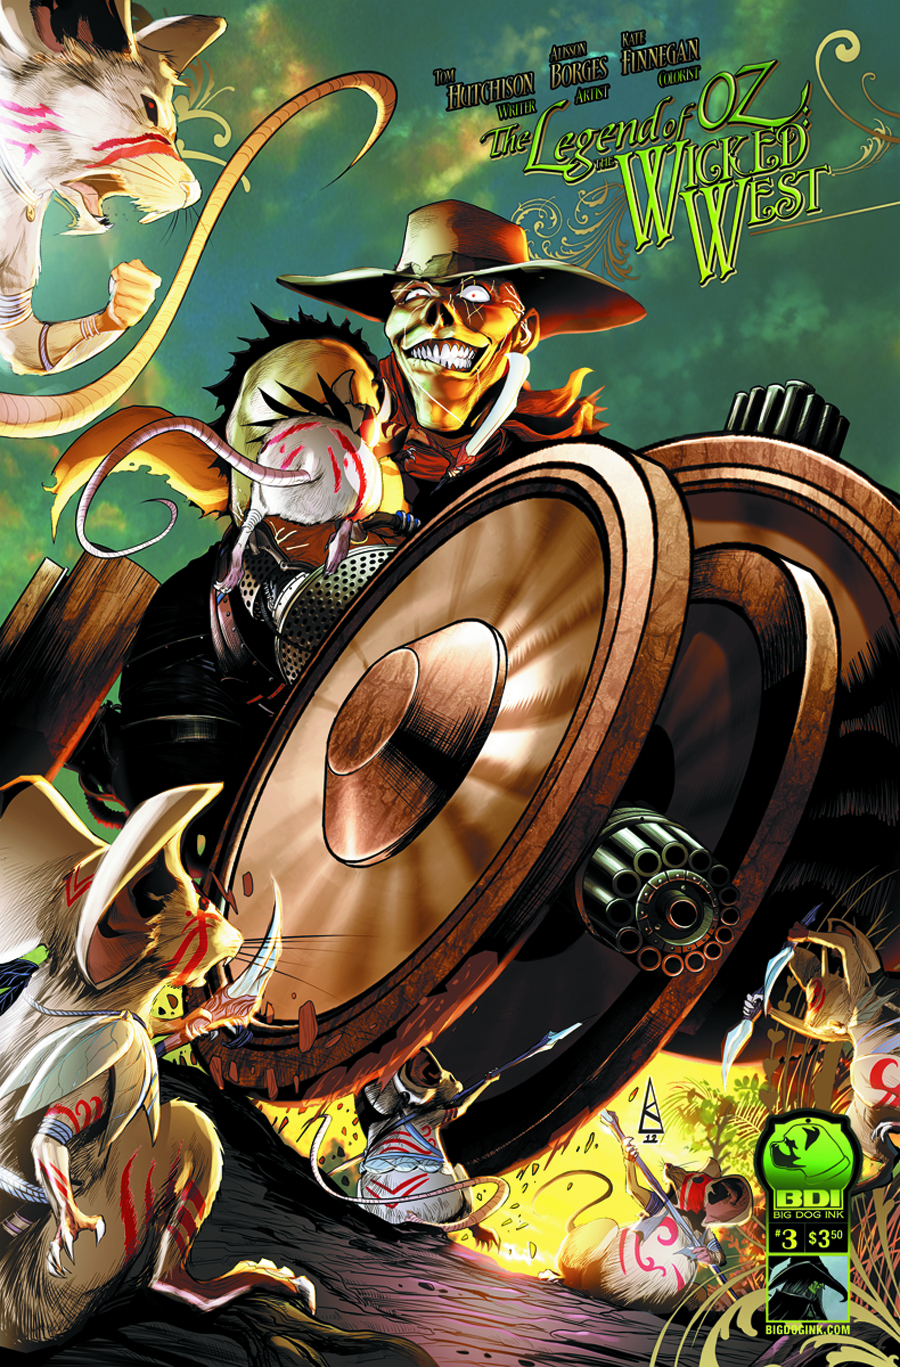 LEGEND OF OZ THE WICKED WEST ONGOING #3